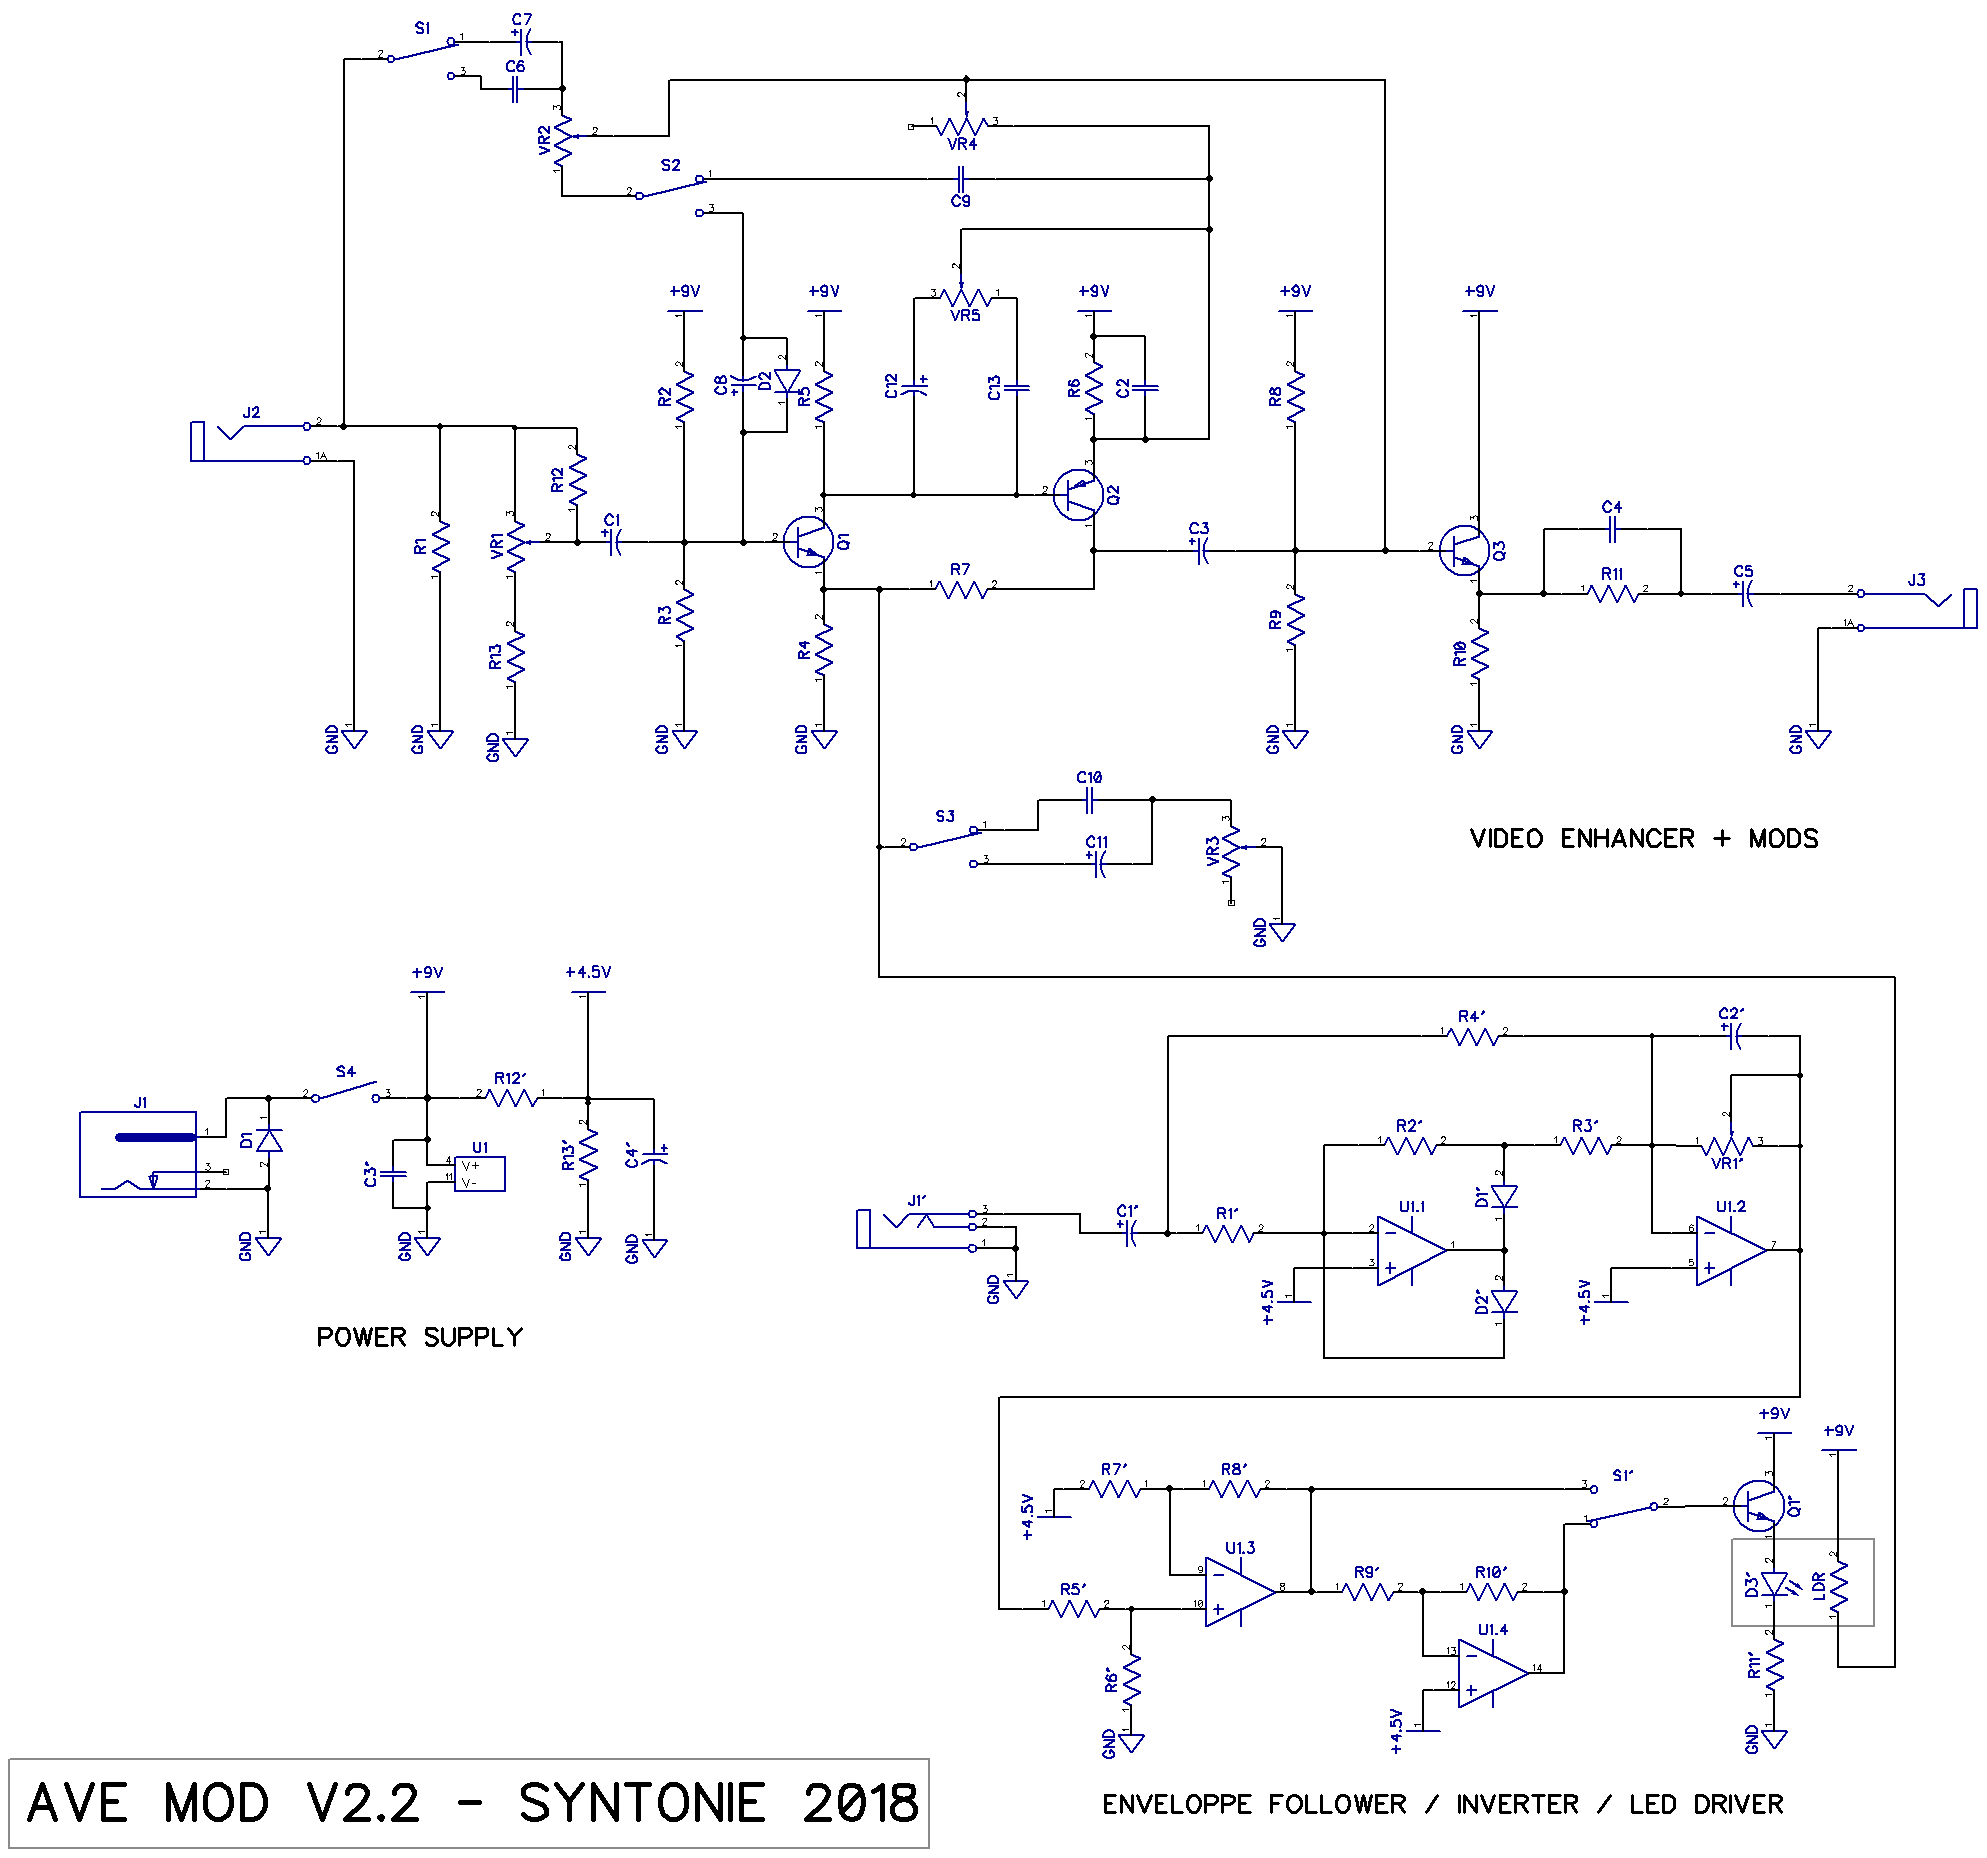 Ave Mod V2 Syntonie Envelope Follower Schematic V22 Schematics